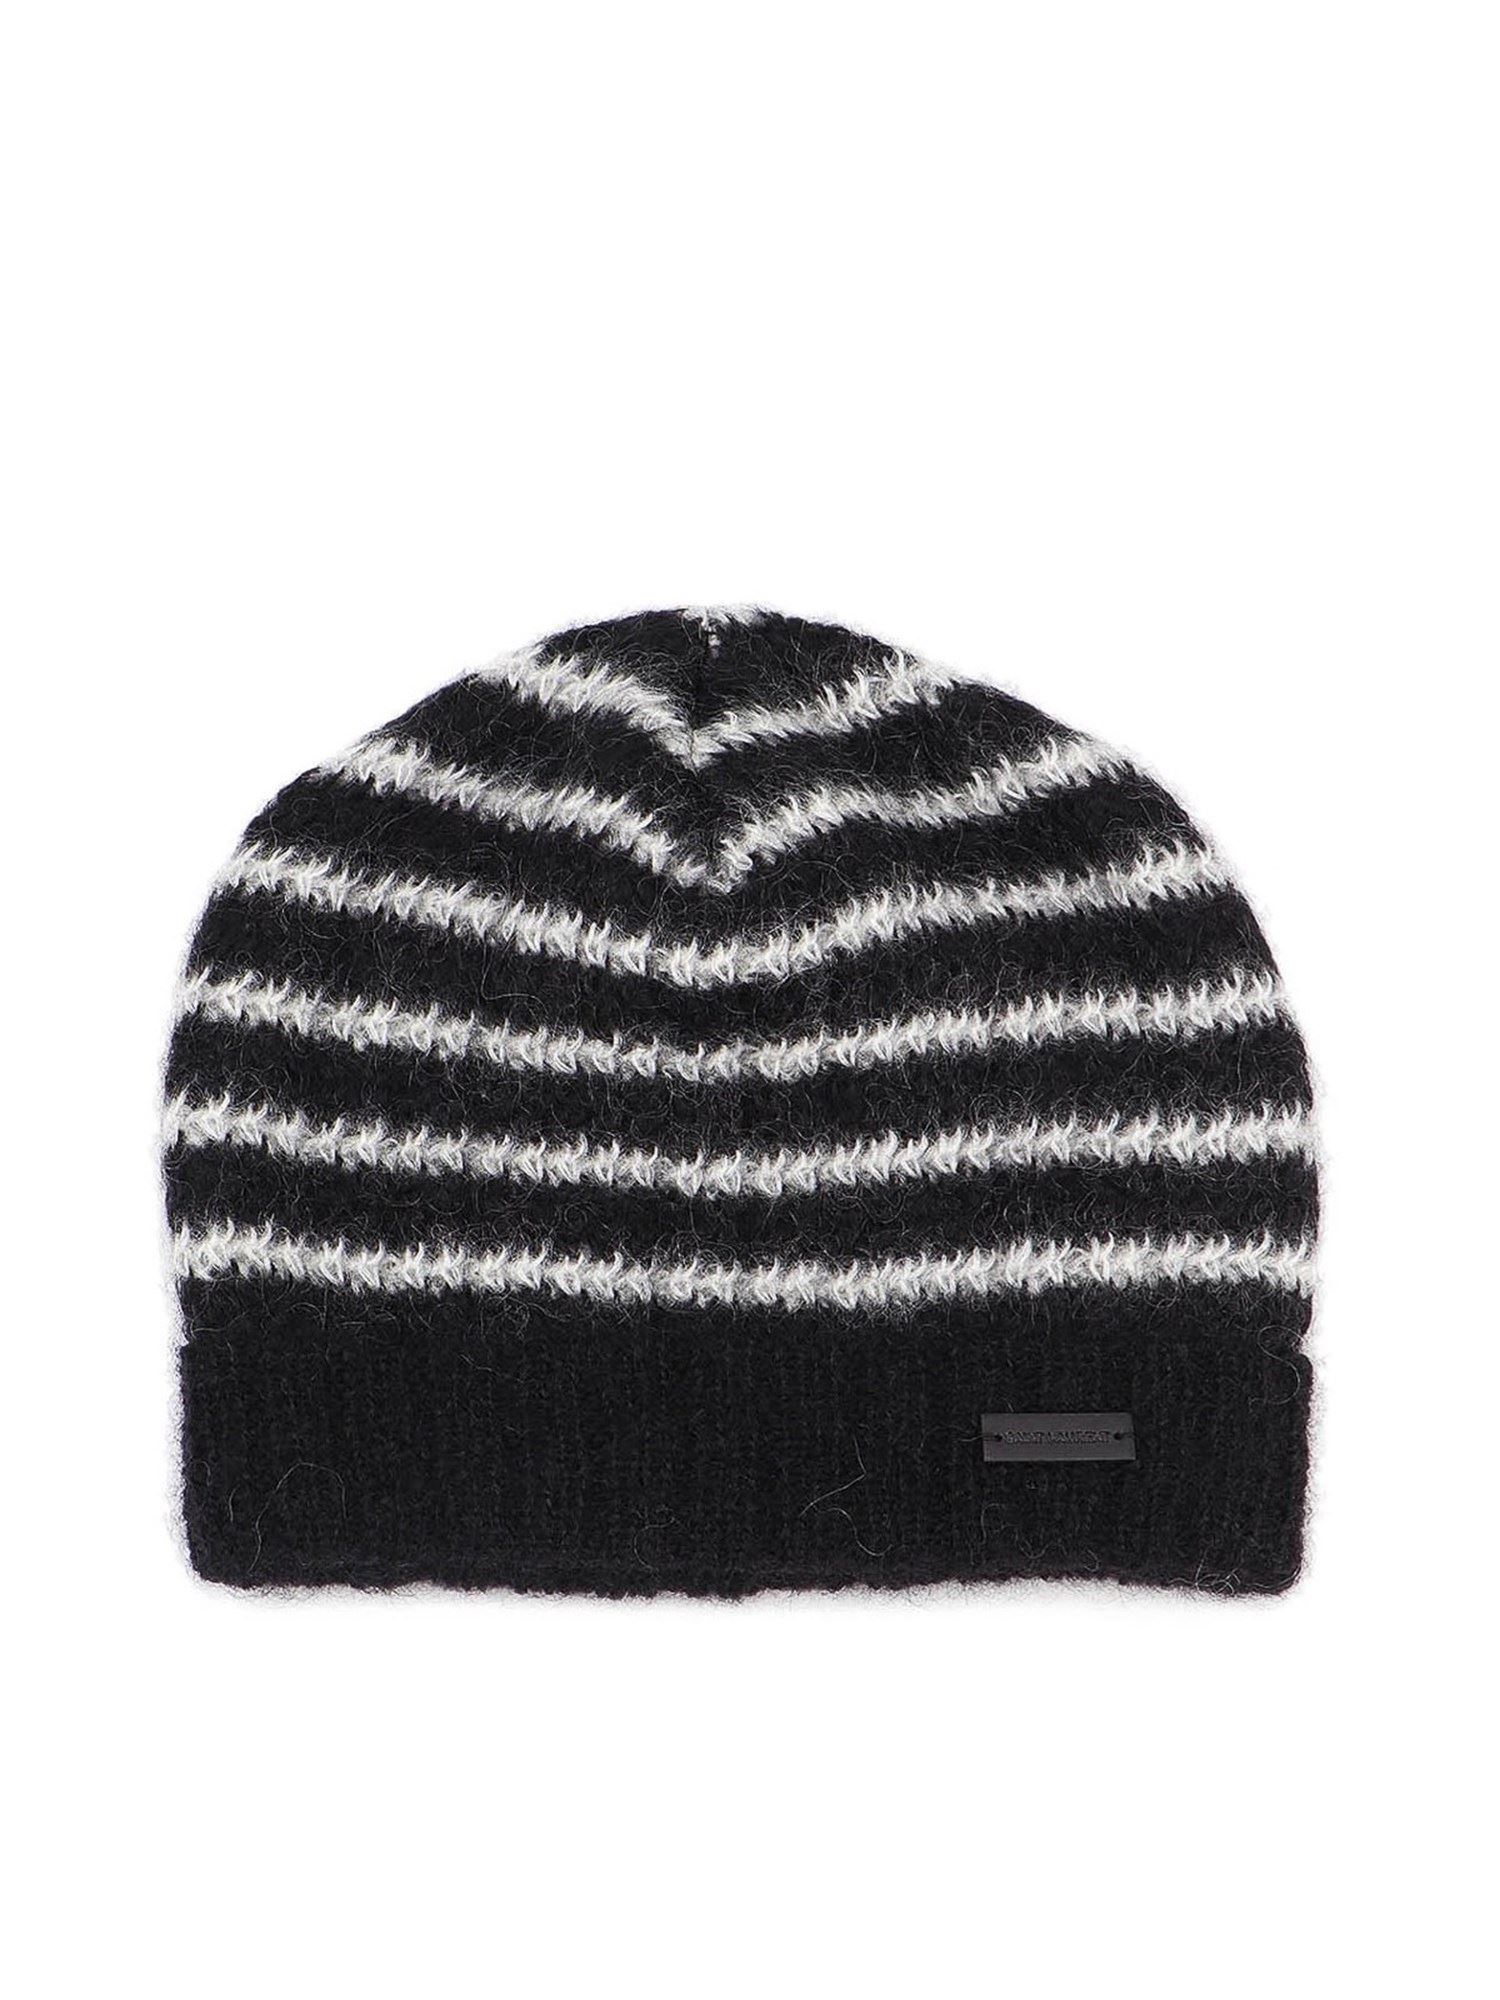 Saint Laurent STRIPED BEANIE IN BLACK AND WHITE